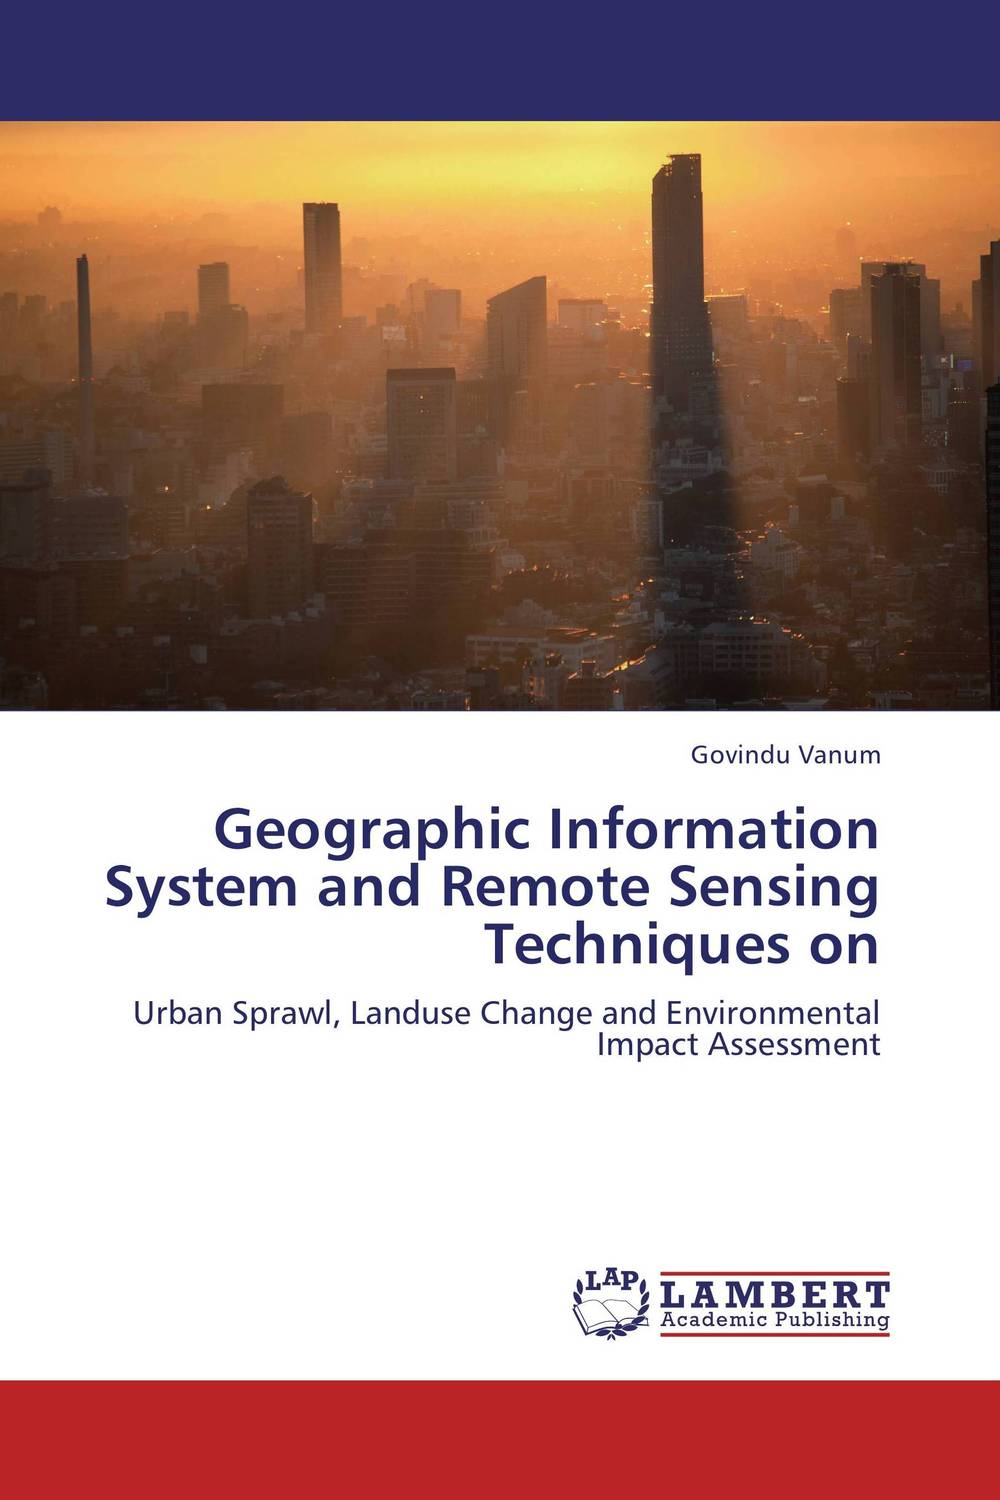 Geographic Information System and Remote Sensing Techniques on impacts of urban traffic management on air quality